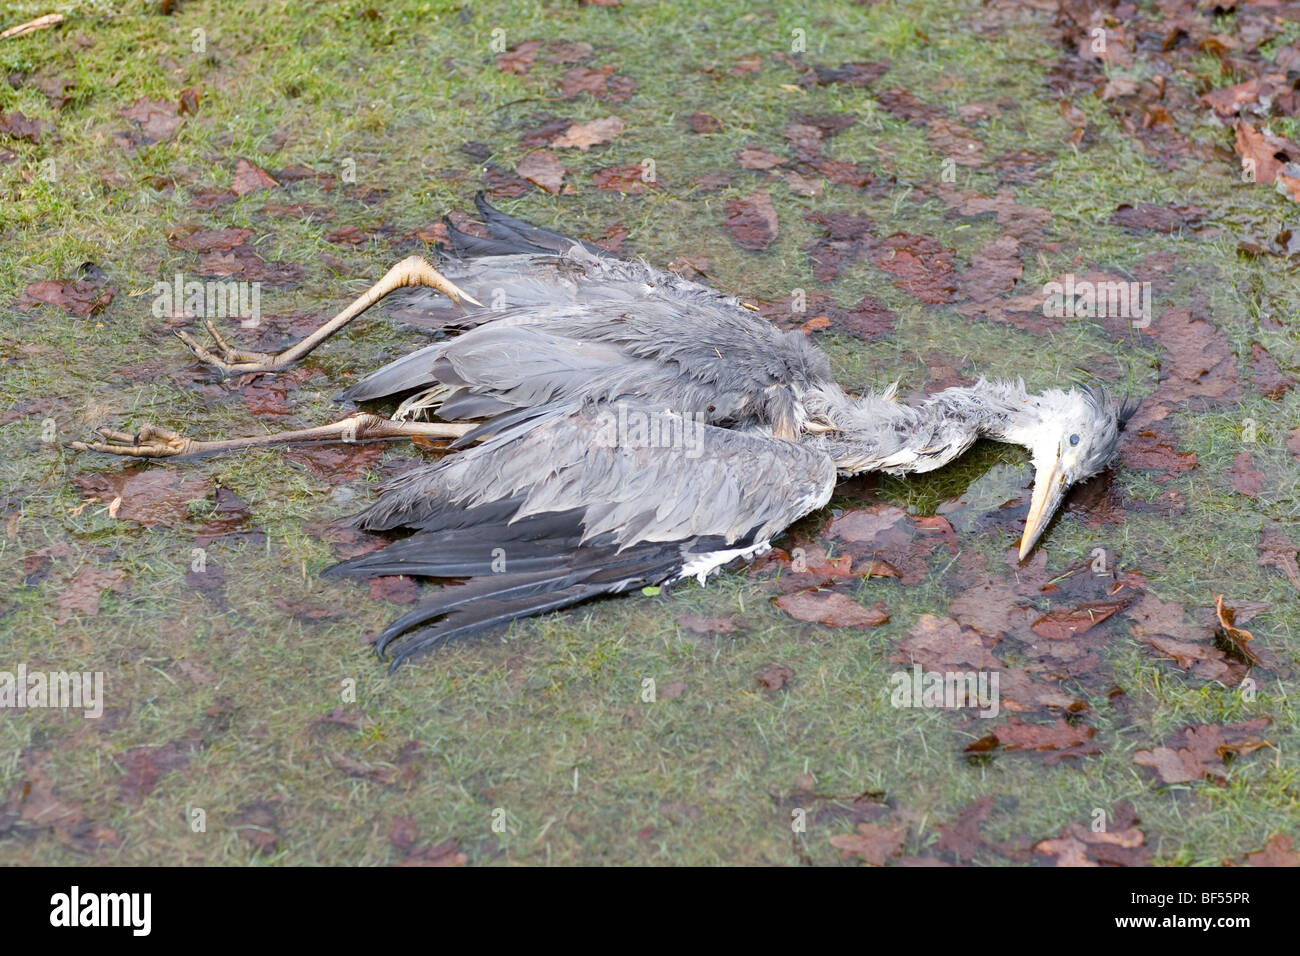 Grey Heron (Ardea cinerea). Winter fatality. Victim of starvation and cold (hypothermia). February. Norfolk. - Stock Image